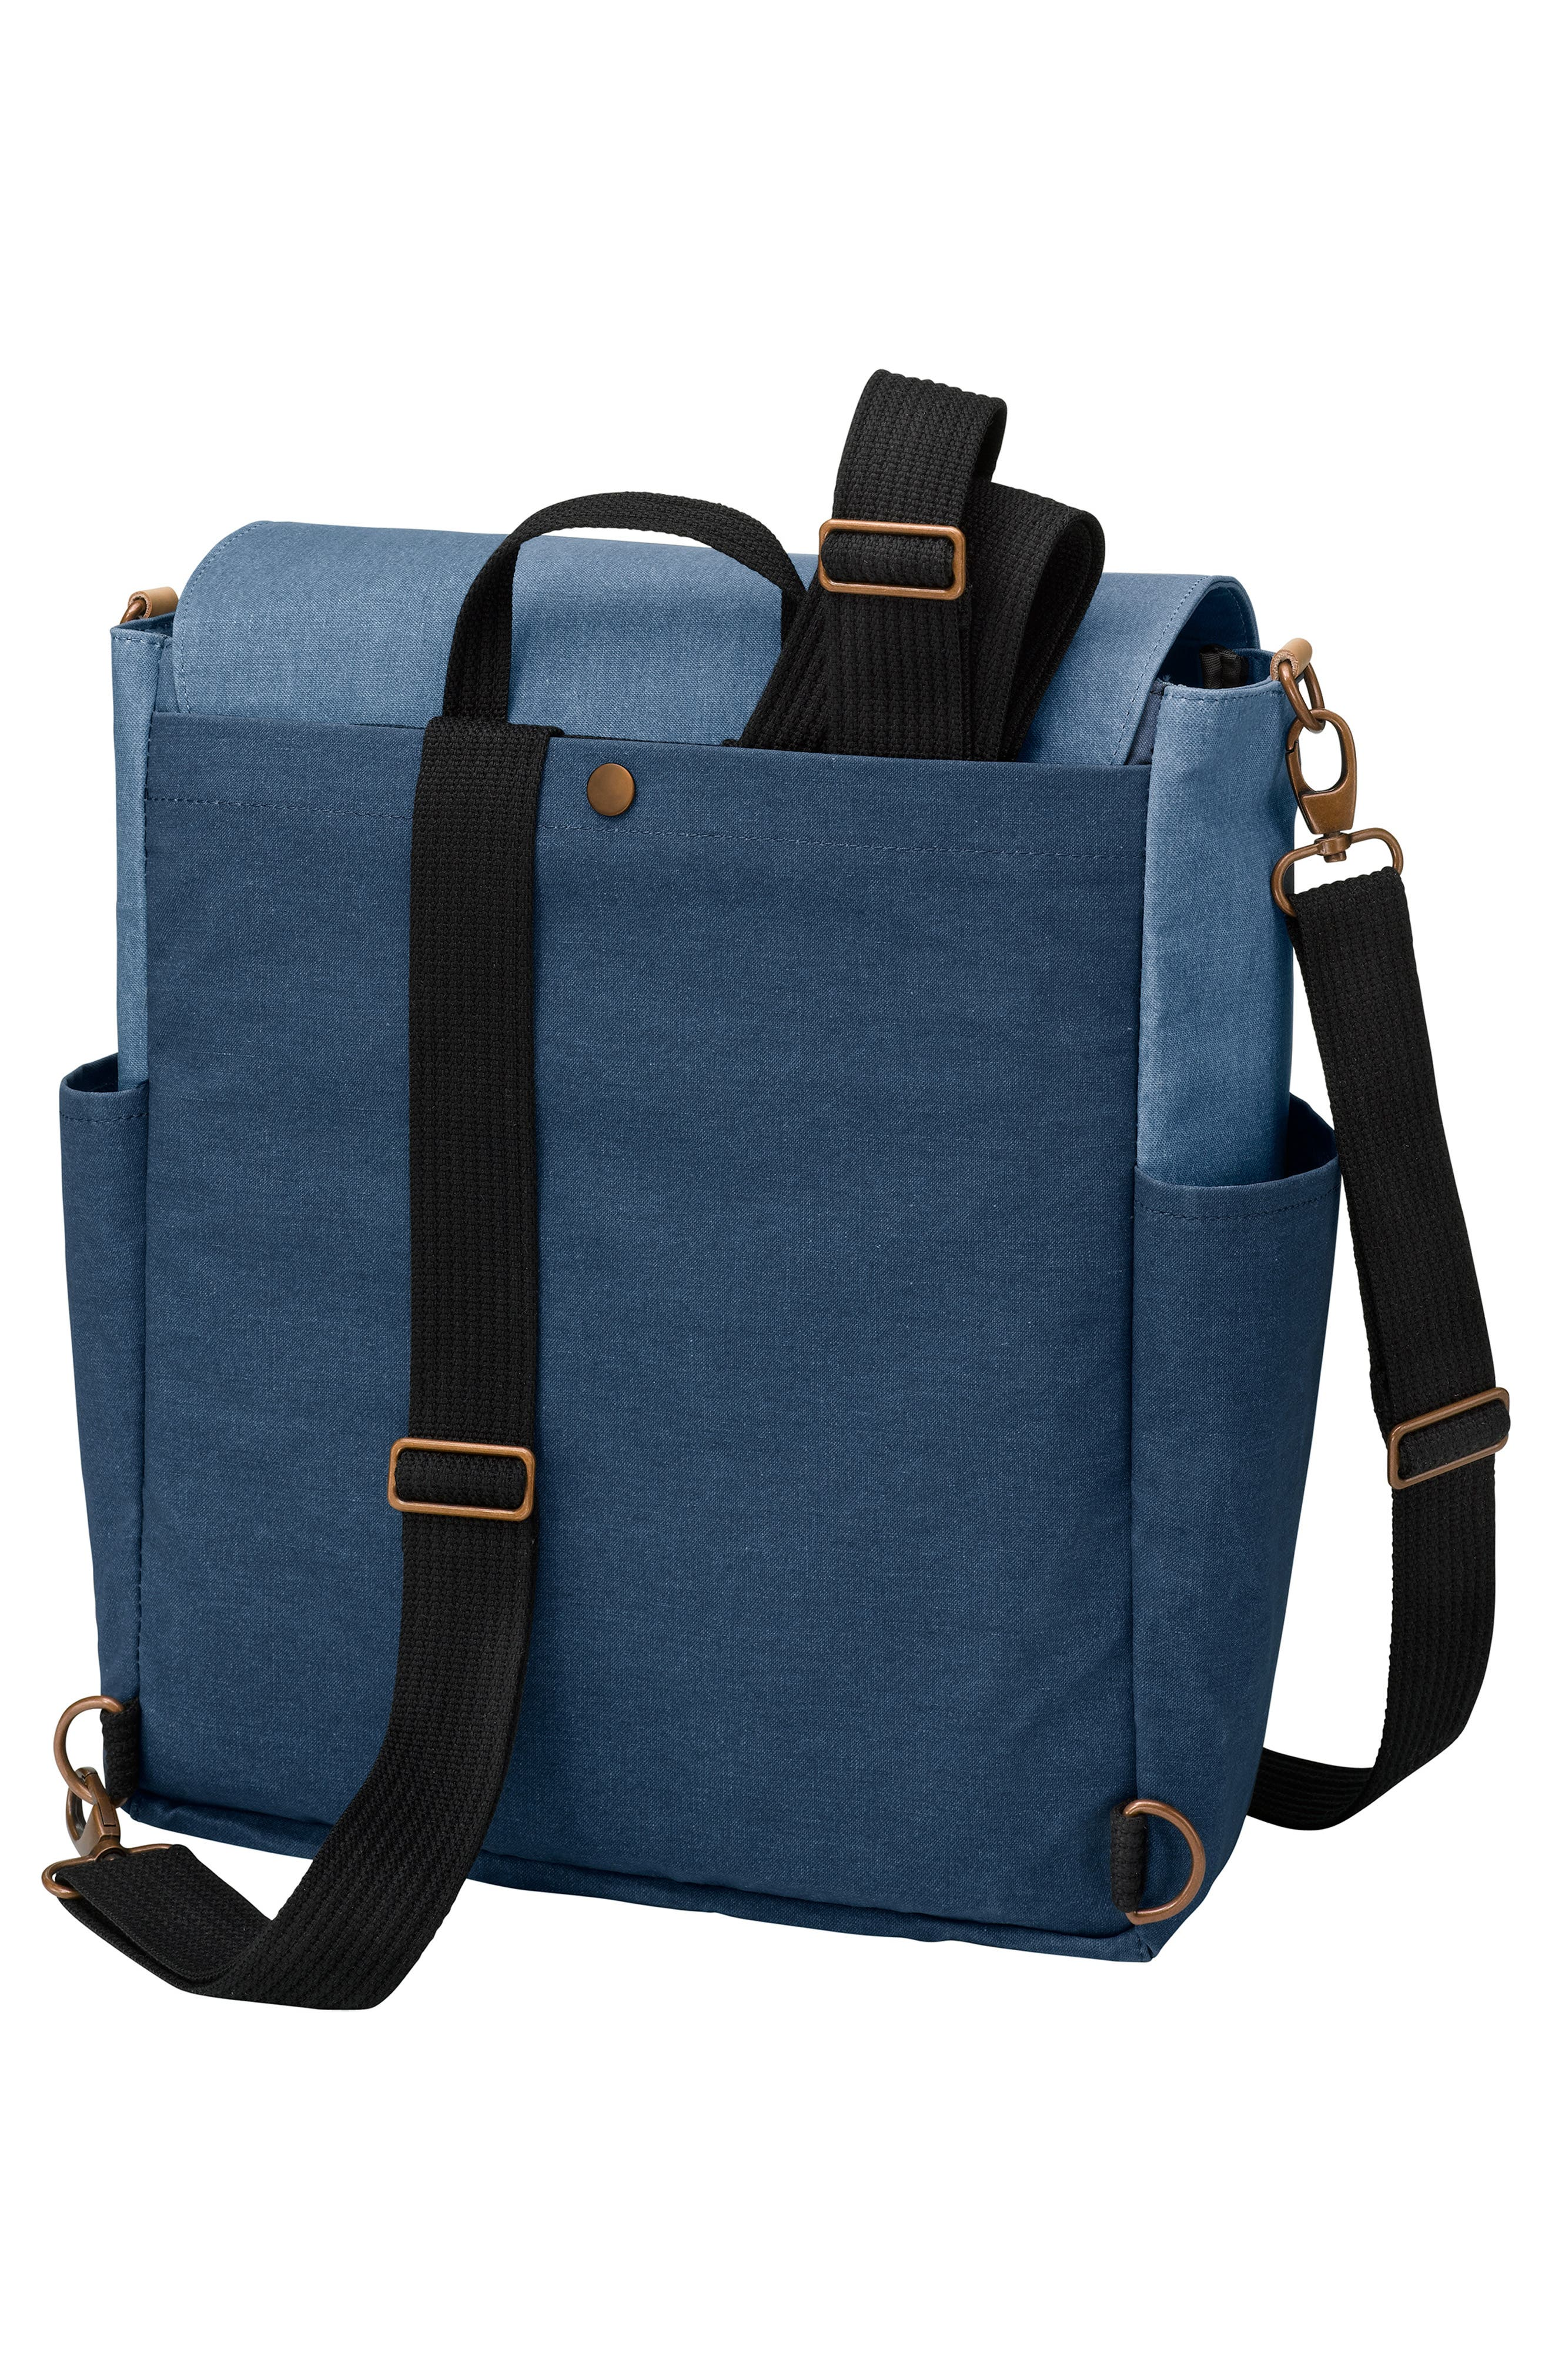 Pathway Backpack Diaper Tote,                             Alternate thumbnail 2, color,                             DENIM